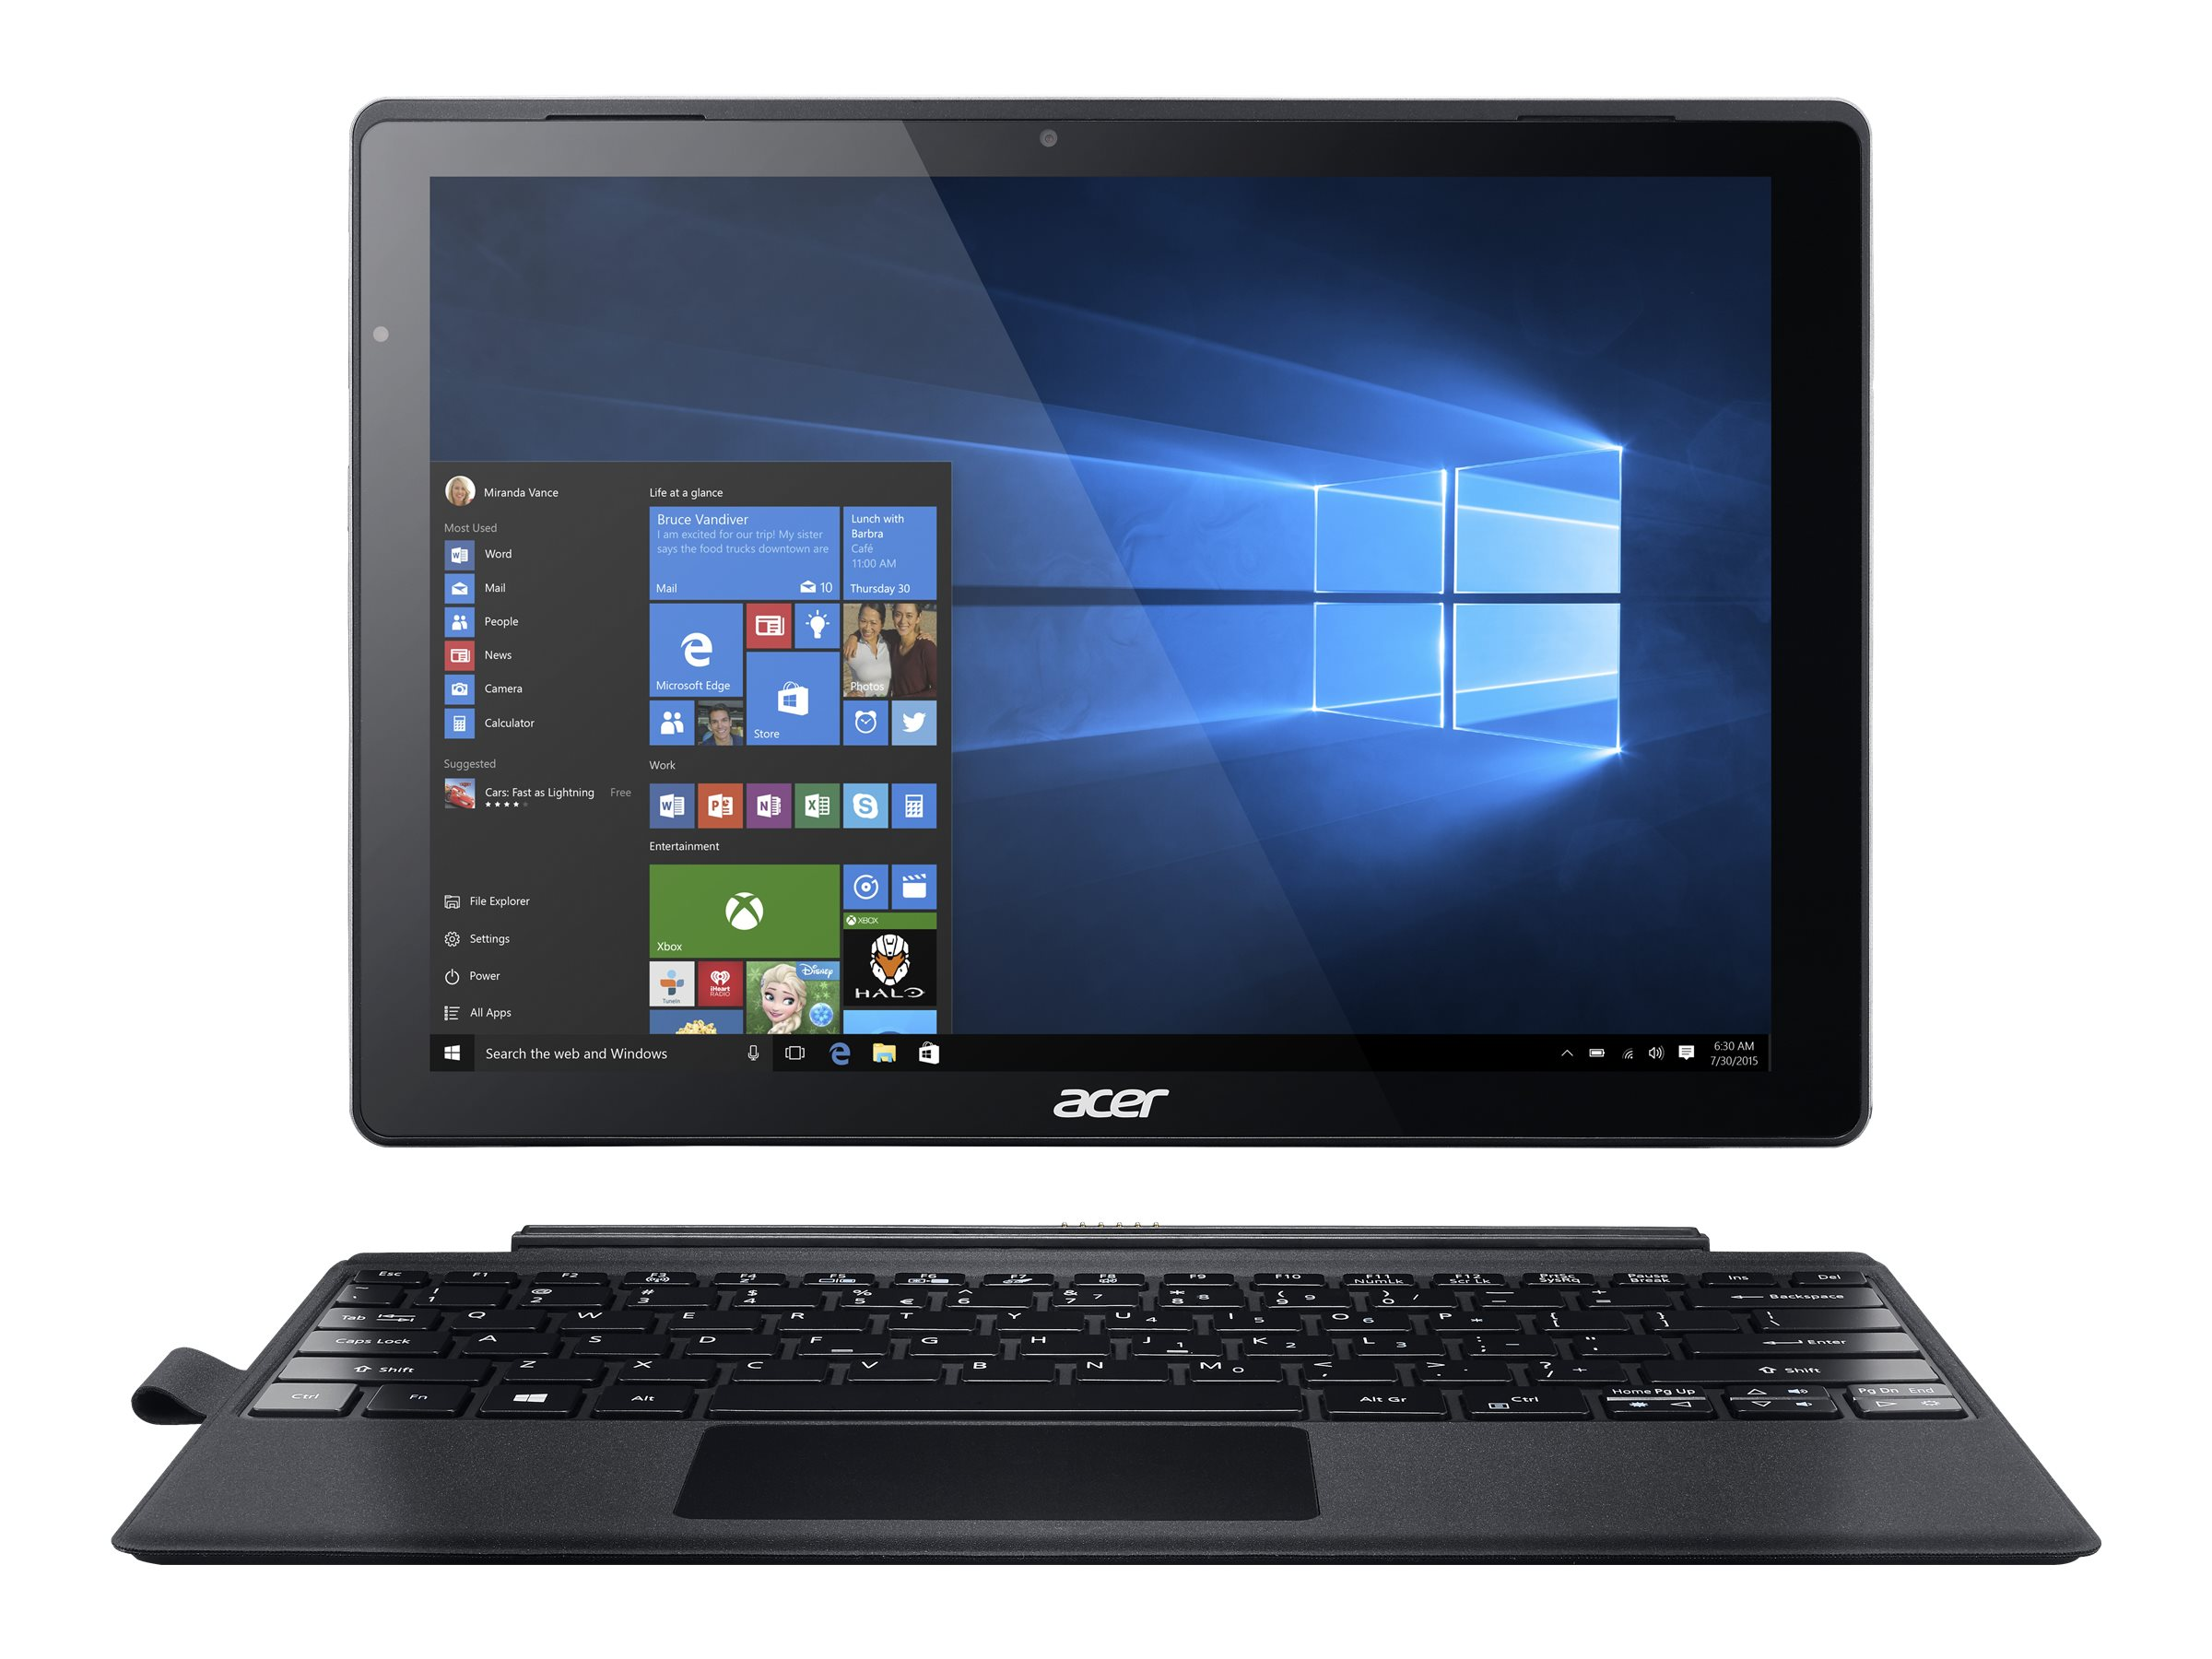 Acer NT.LCDAA.005 Image 3